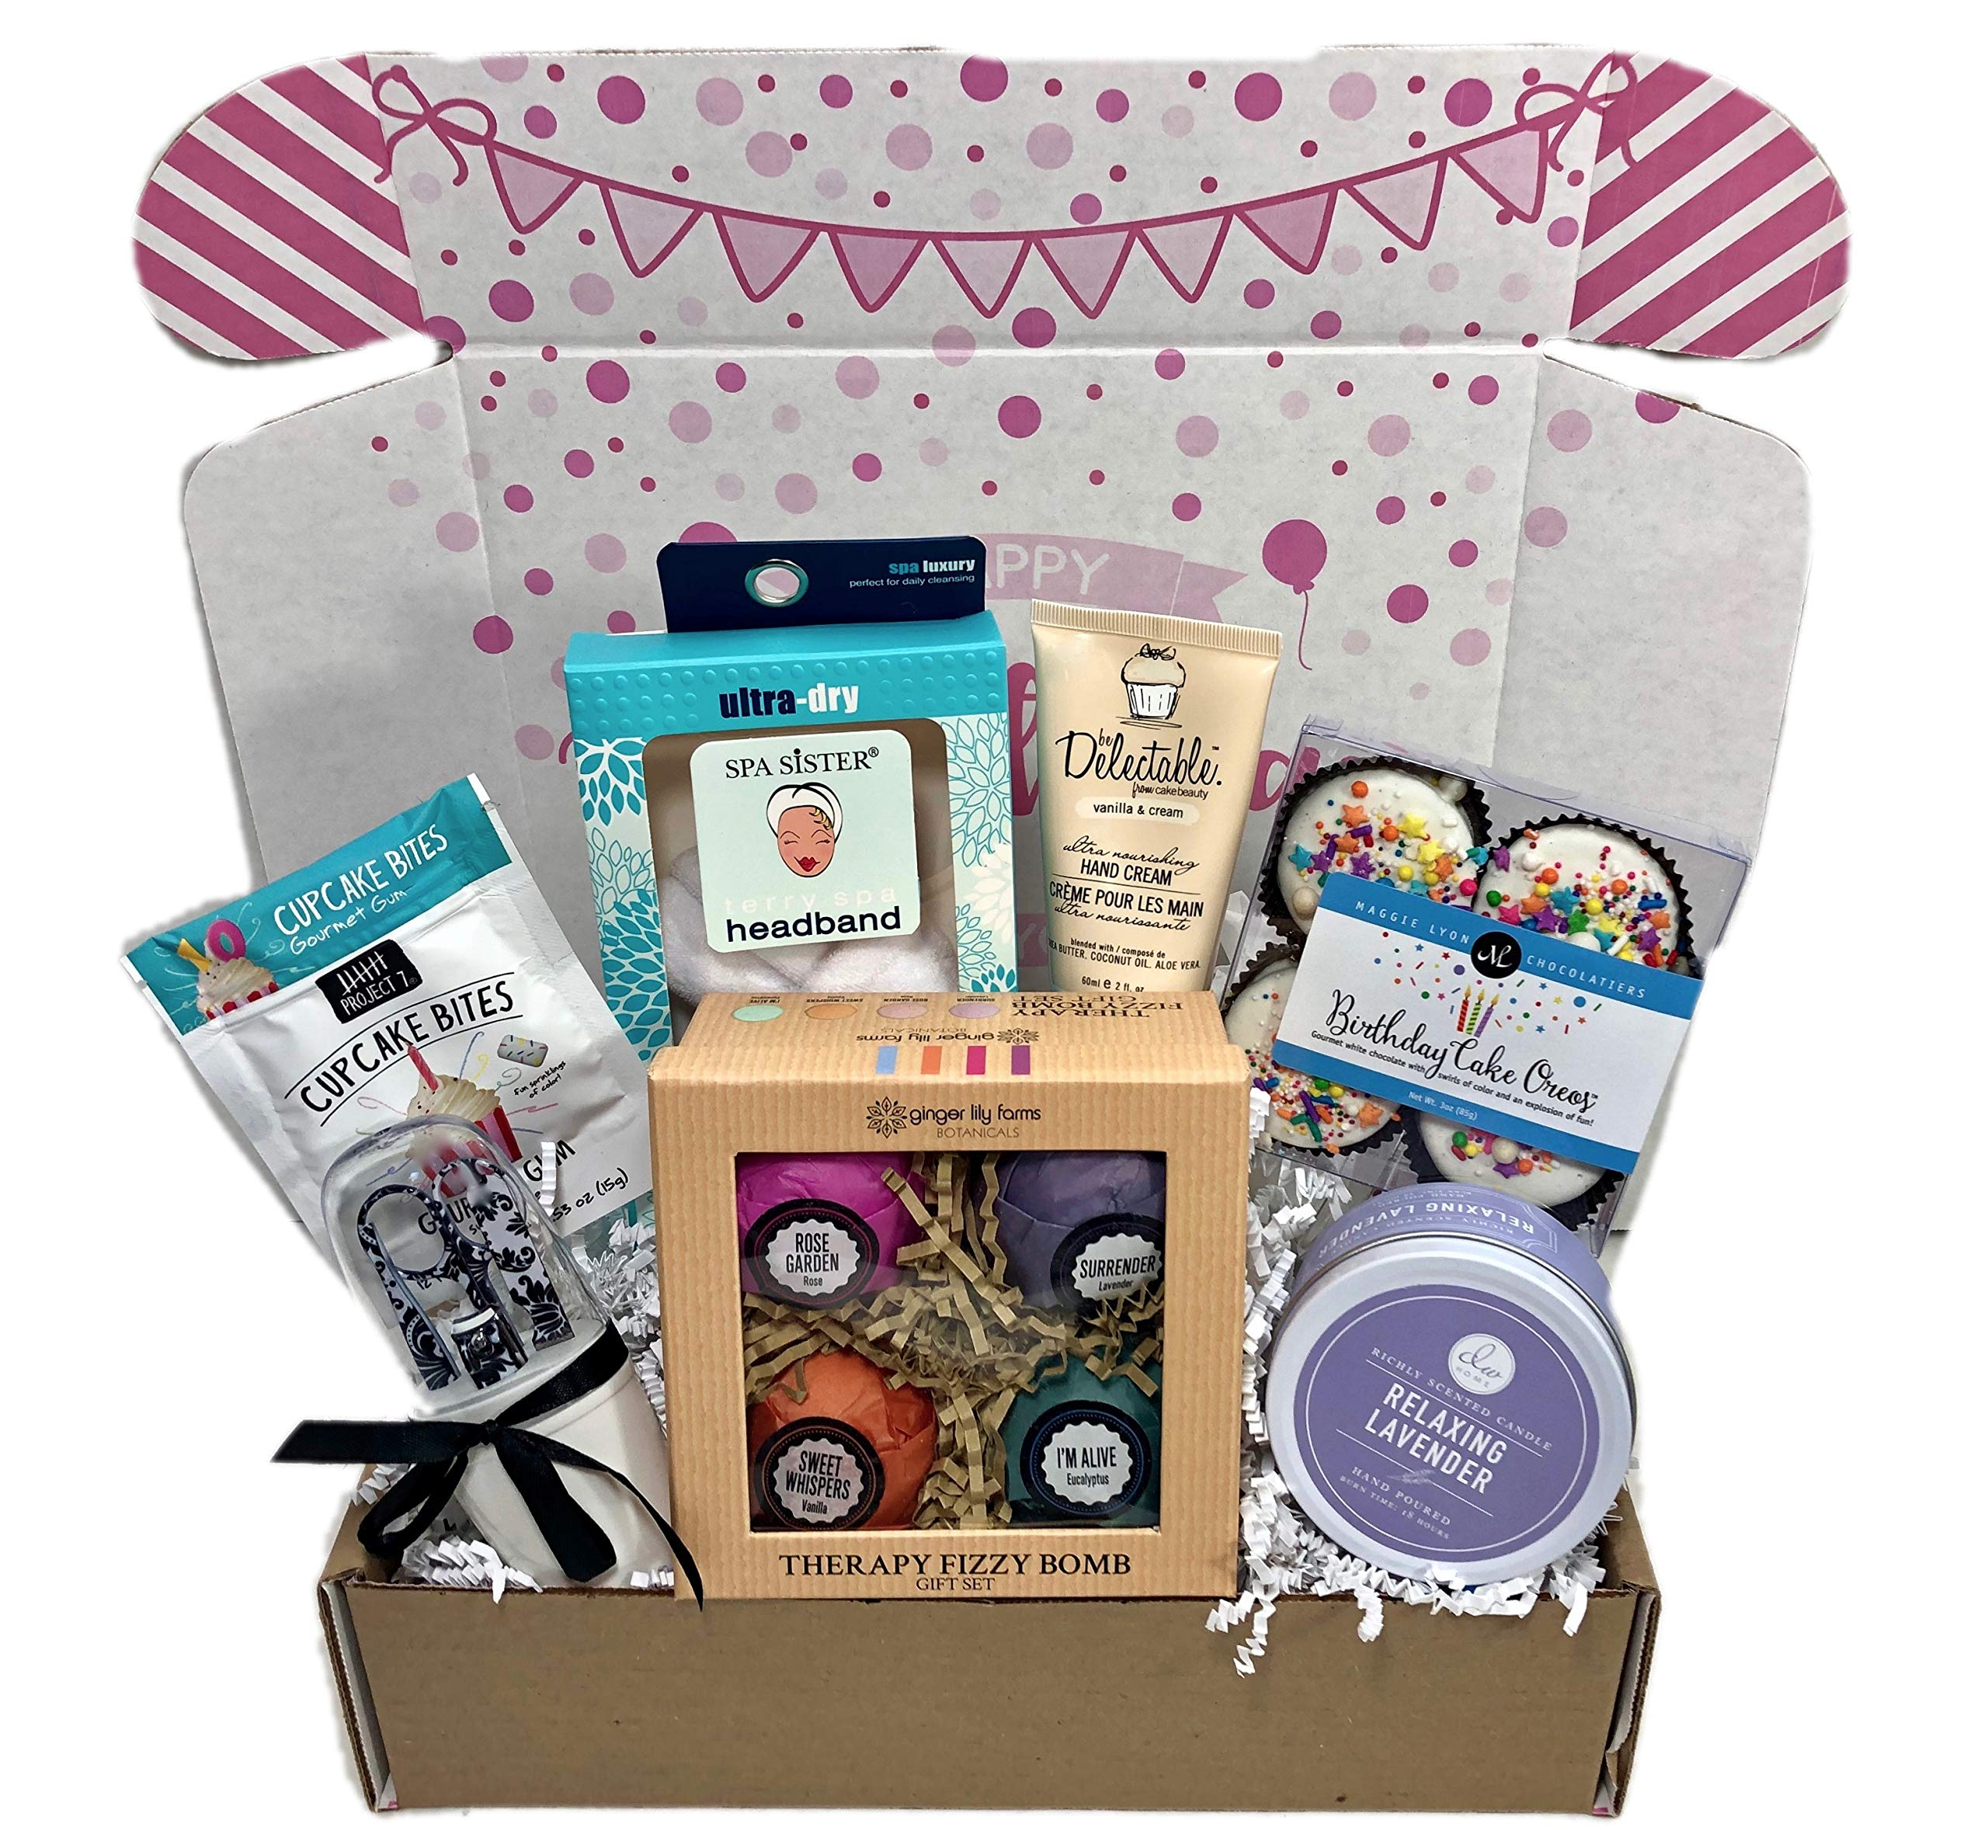 Spa Bath Bomb Birthday Theme Gift Basket Box Her-Women, Mom, Aunt, Sister or Friend by Hey, It's Your Day Gift Box Co.